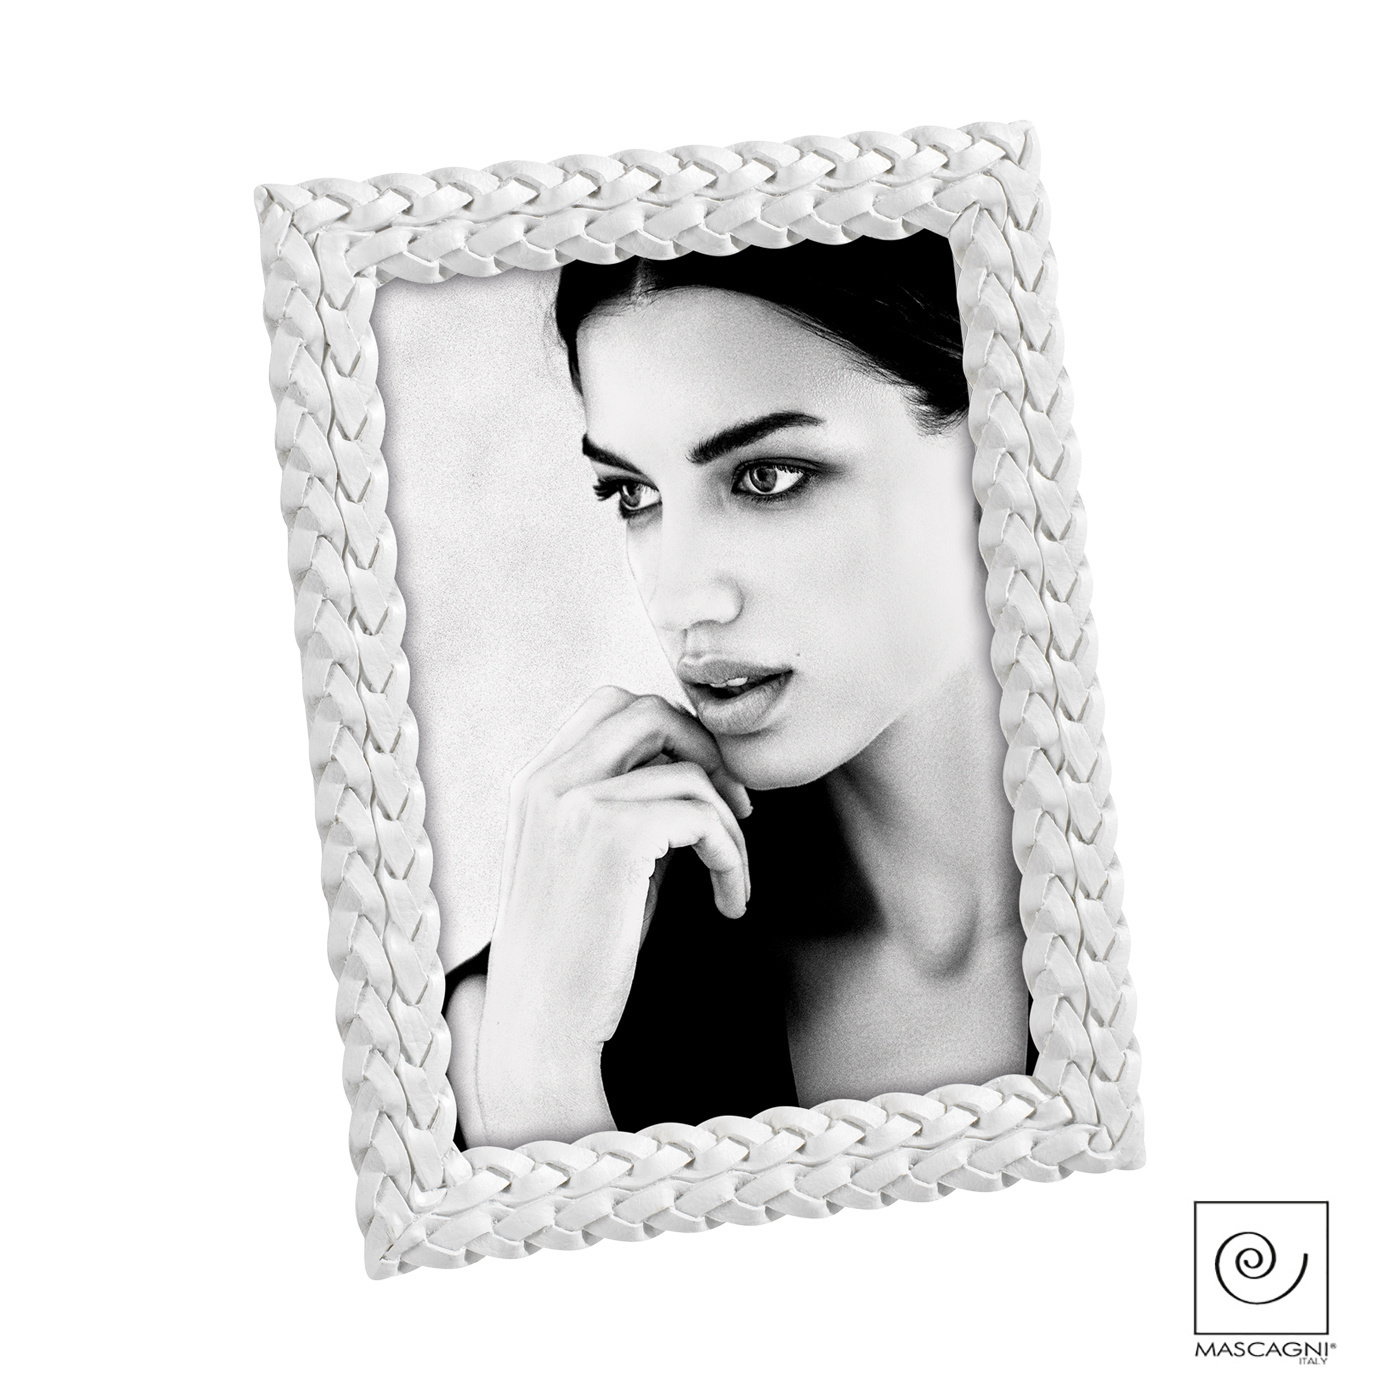 Art Mascagni A1051 PHOTO FRAME 13X18 - COL.WHITE